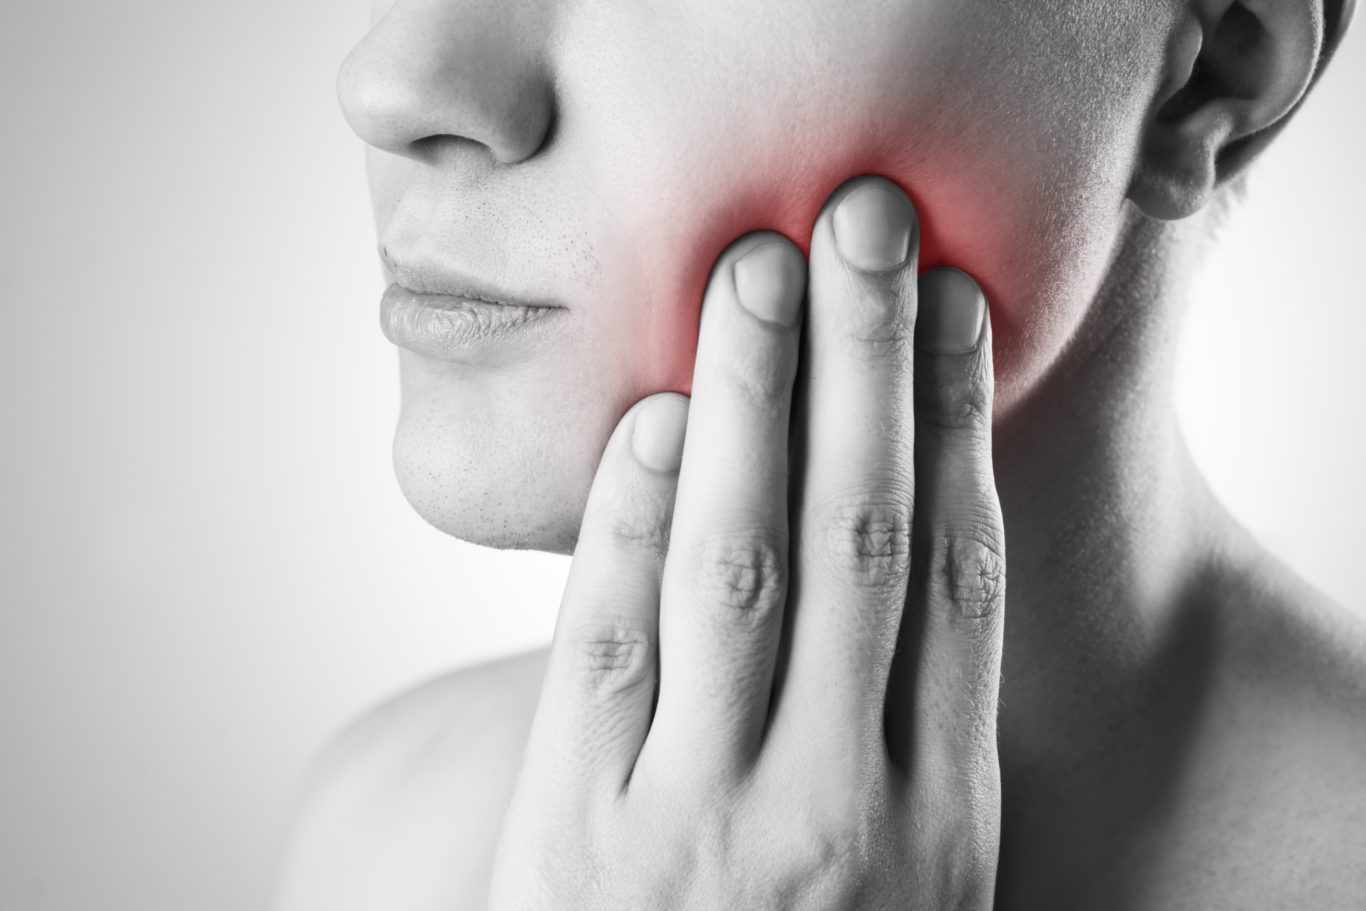 Painless Wisdom Tooth Removal West Hartford, CT